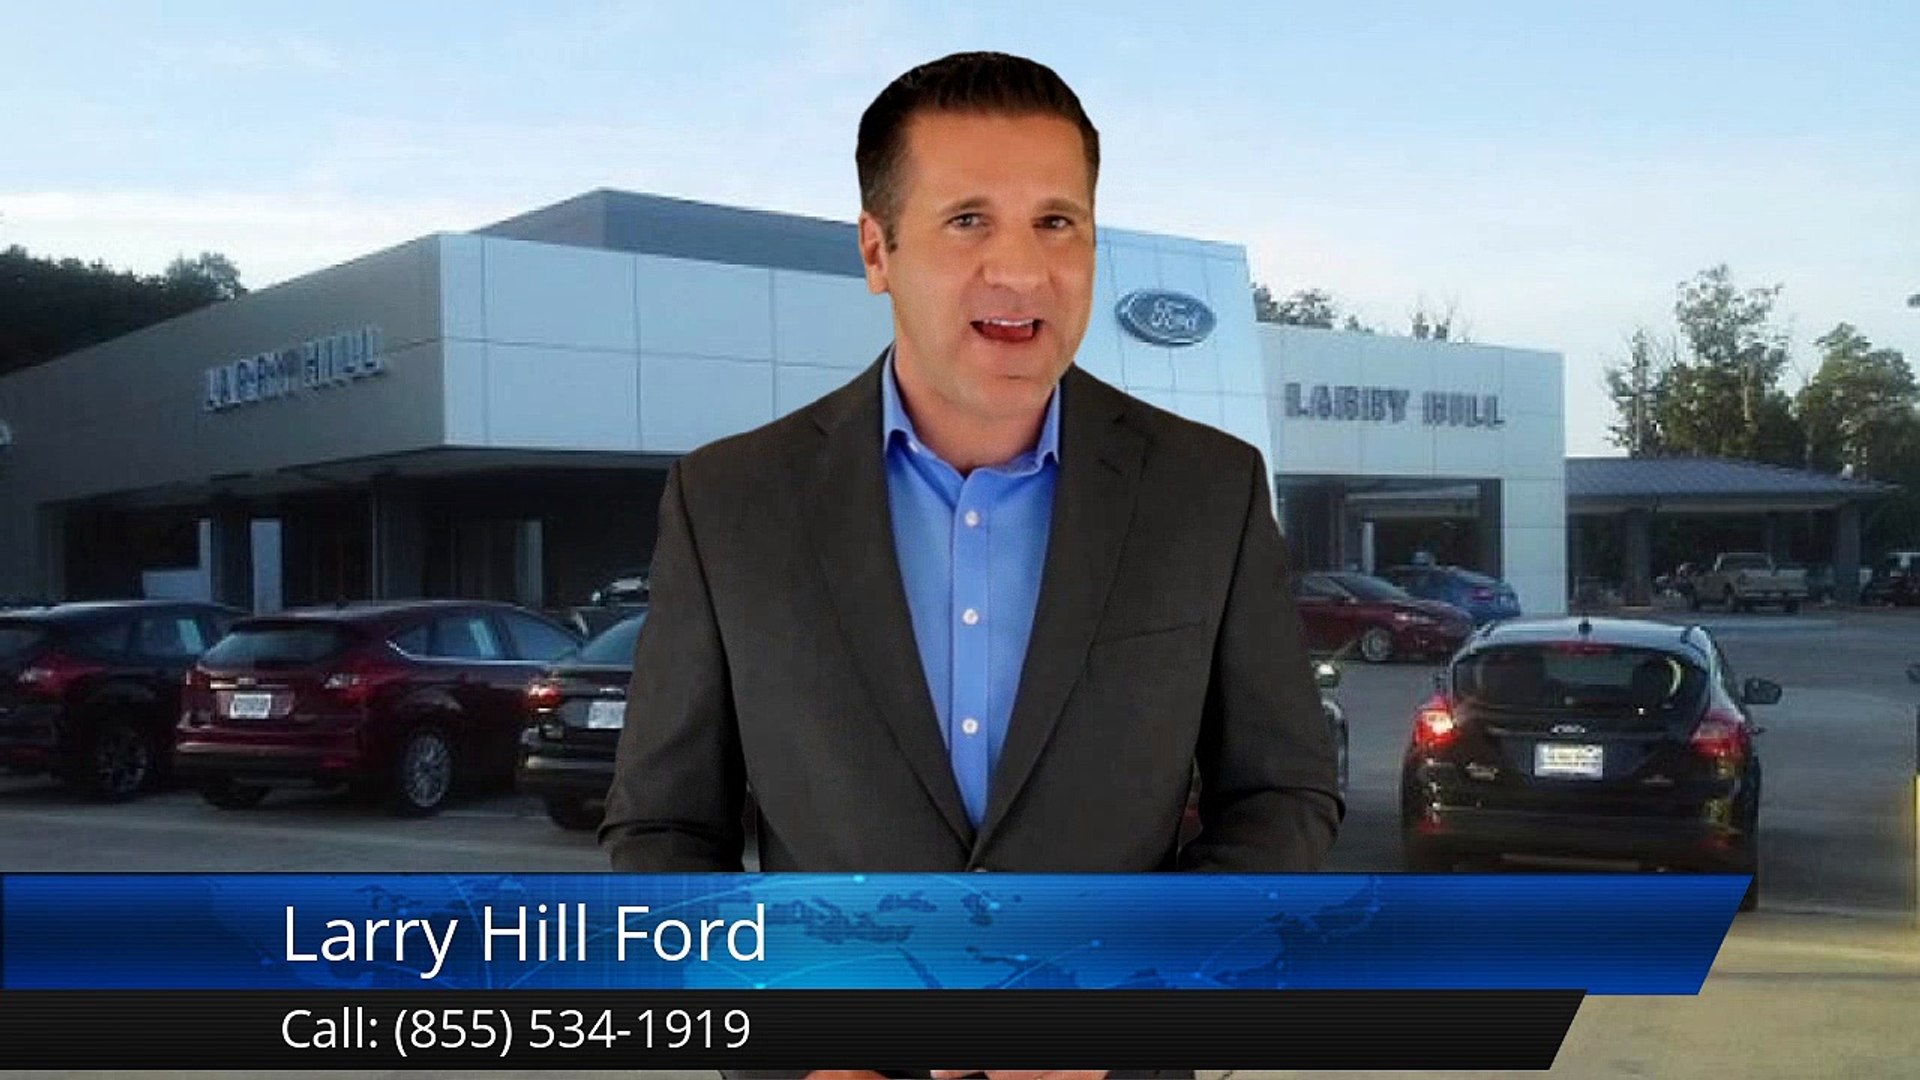 Larry Hill Ford >> 2017 Ford F 150 For Sale Cleveland Tn Buy New F 150 Larry Hill Ford